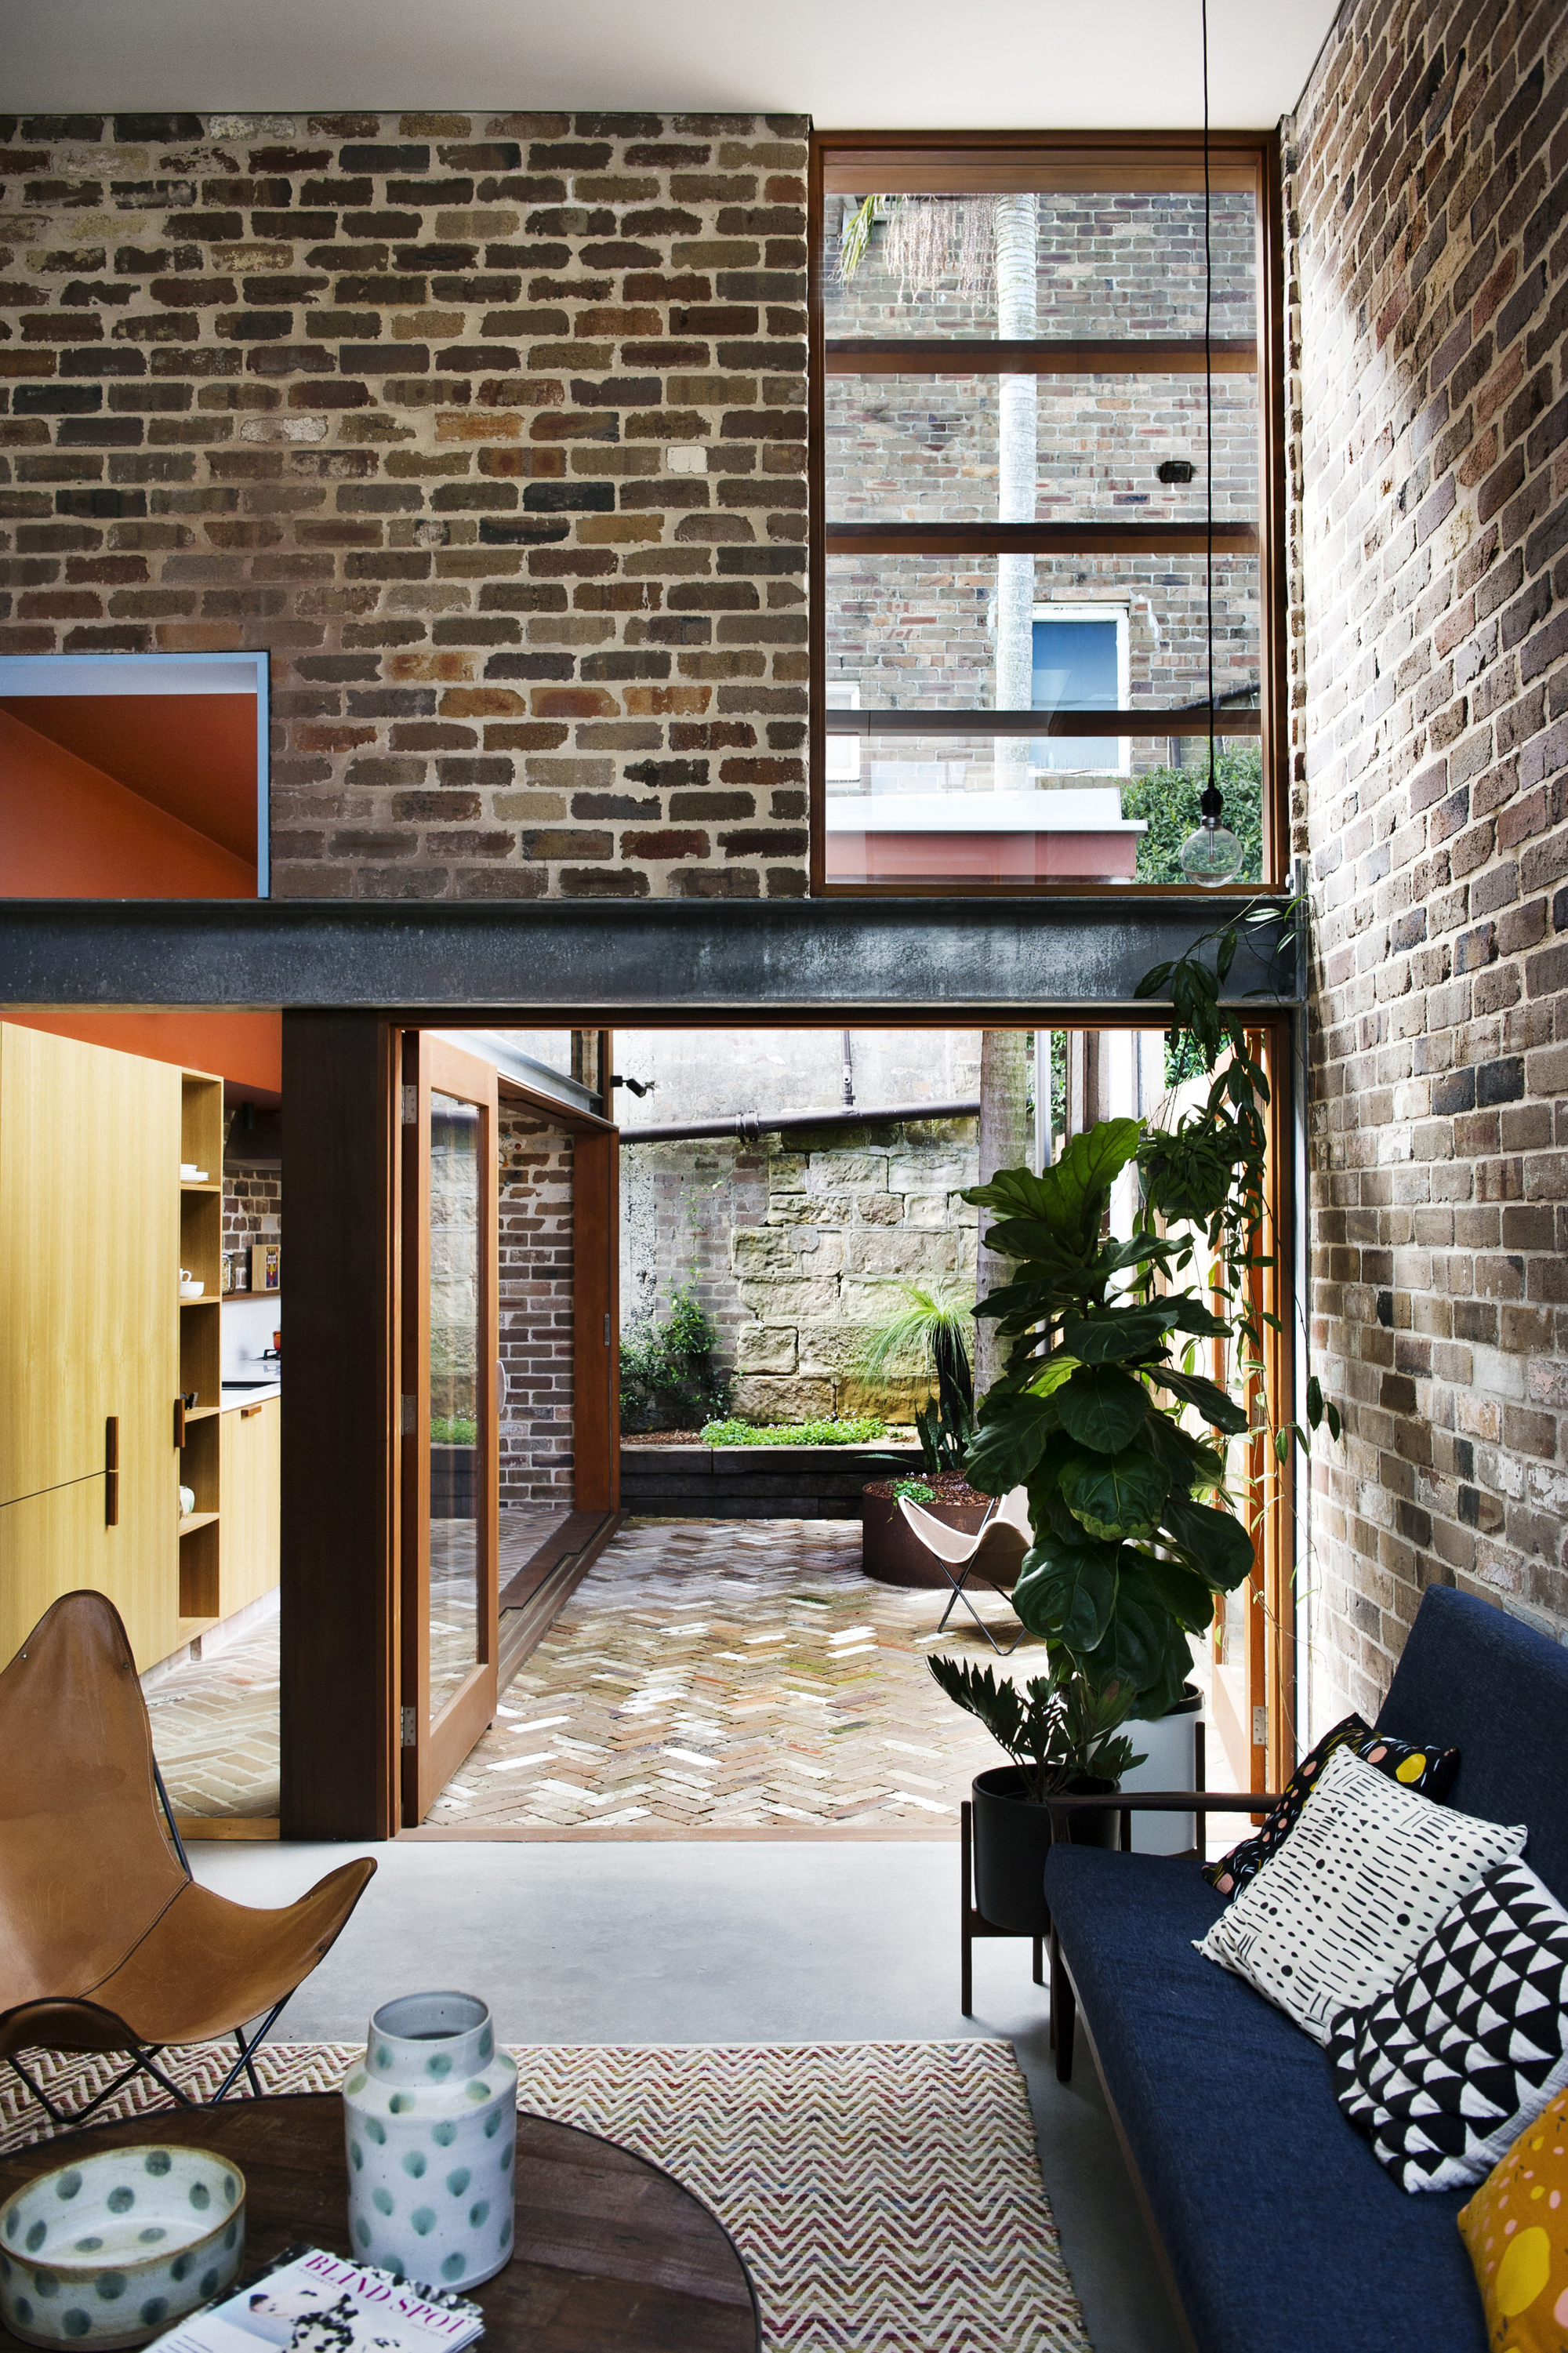 Walter Street Terrace David Boyle Architect Archdaily